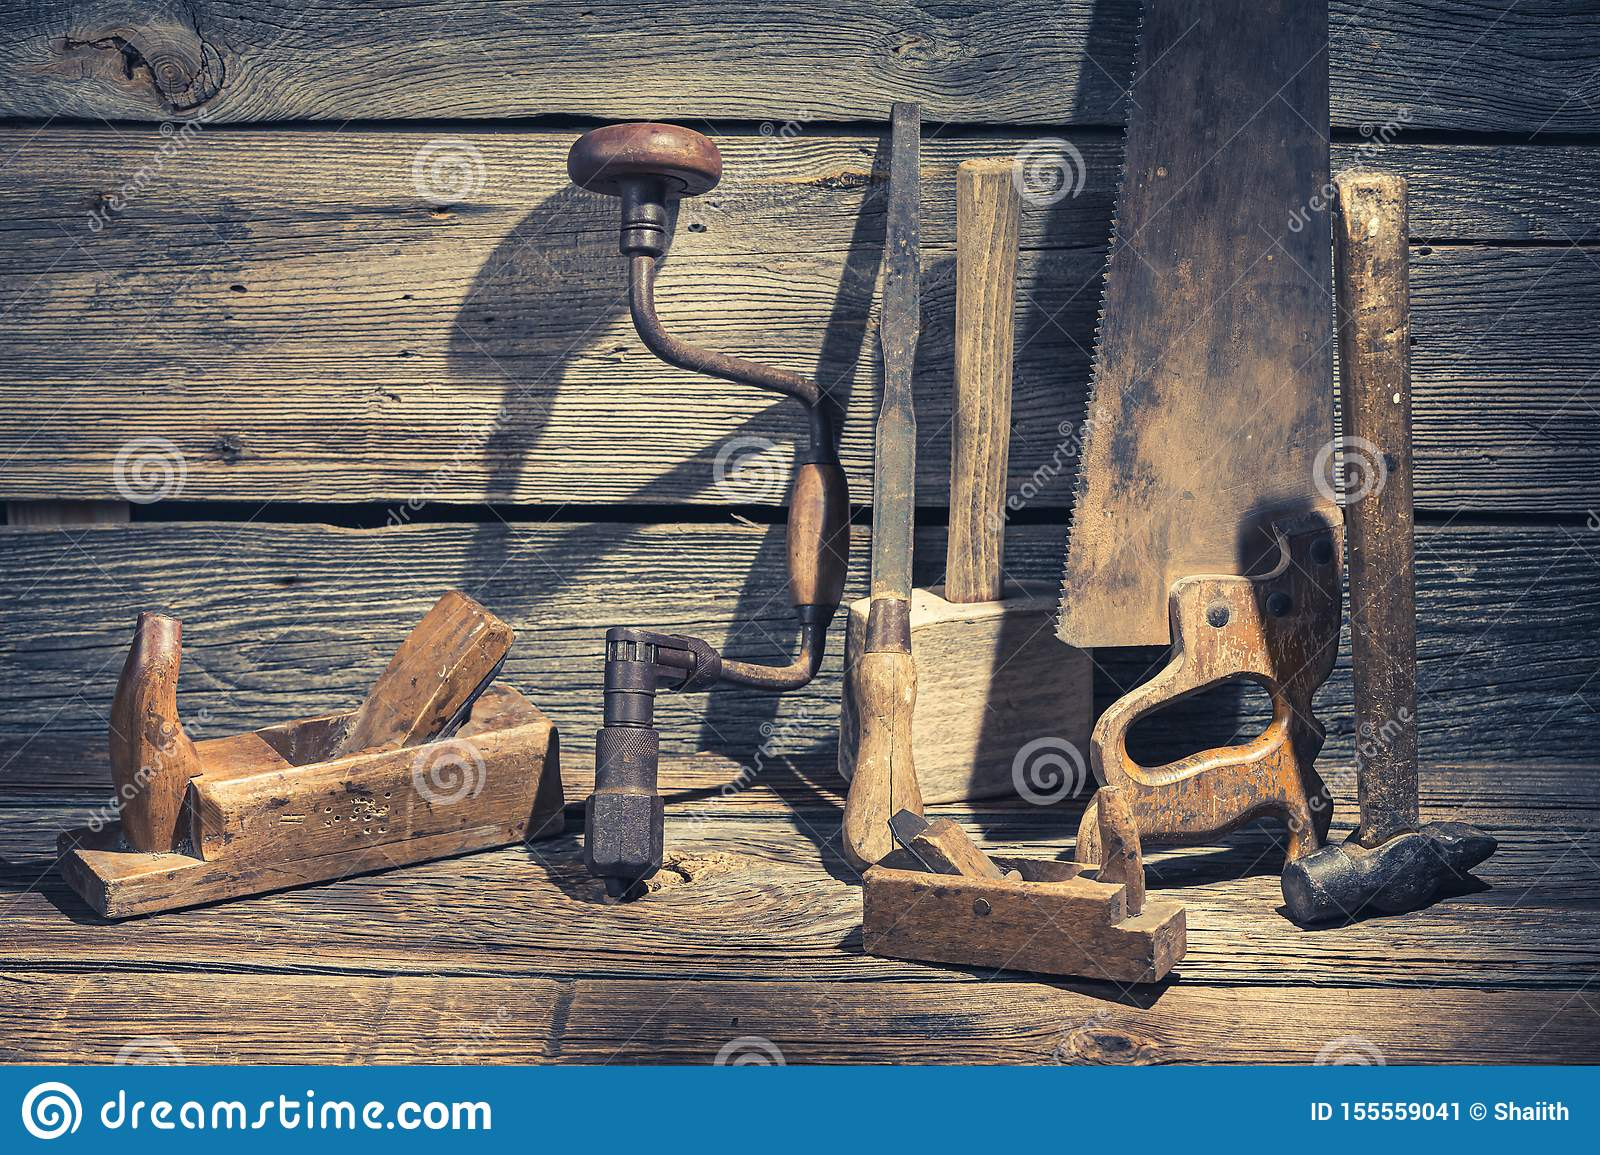 Hammer, Saw And Chisel On Rustic Wooden Table Stock Image ...